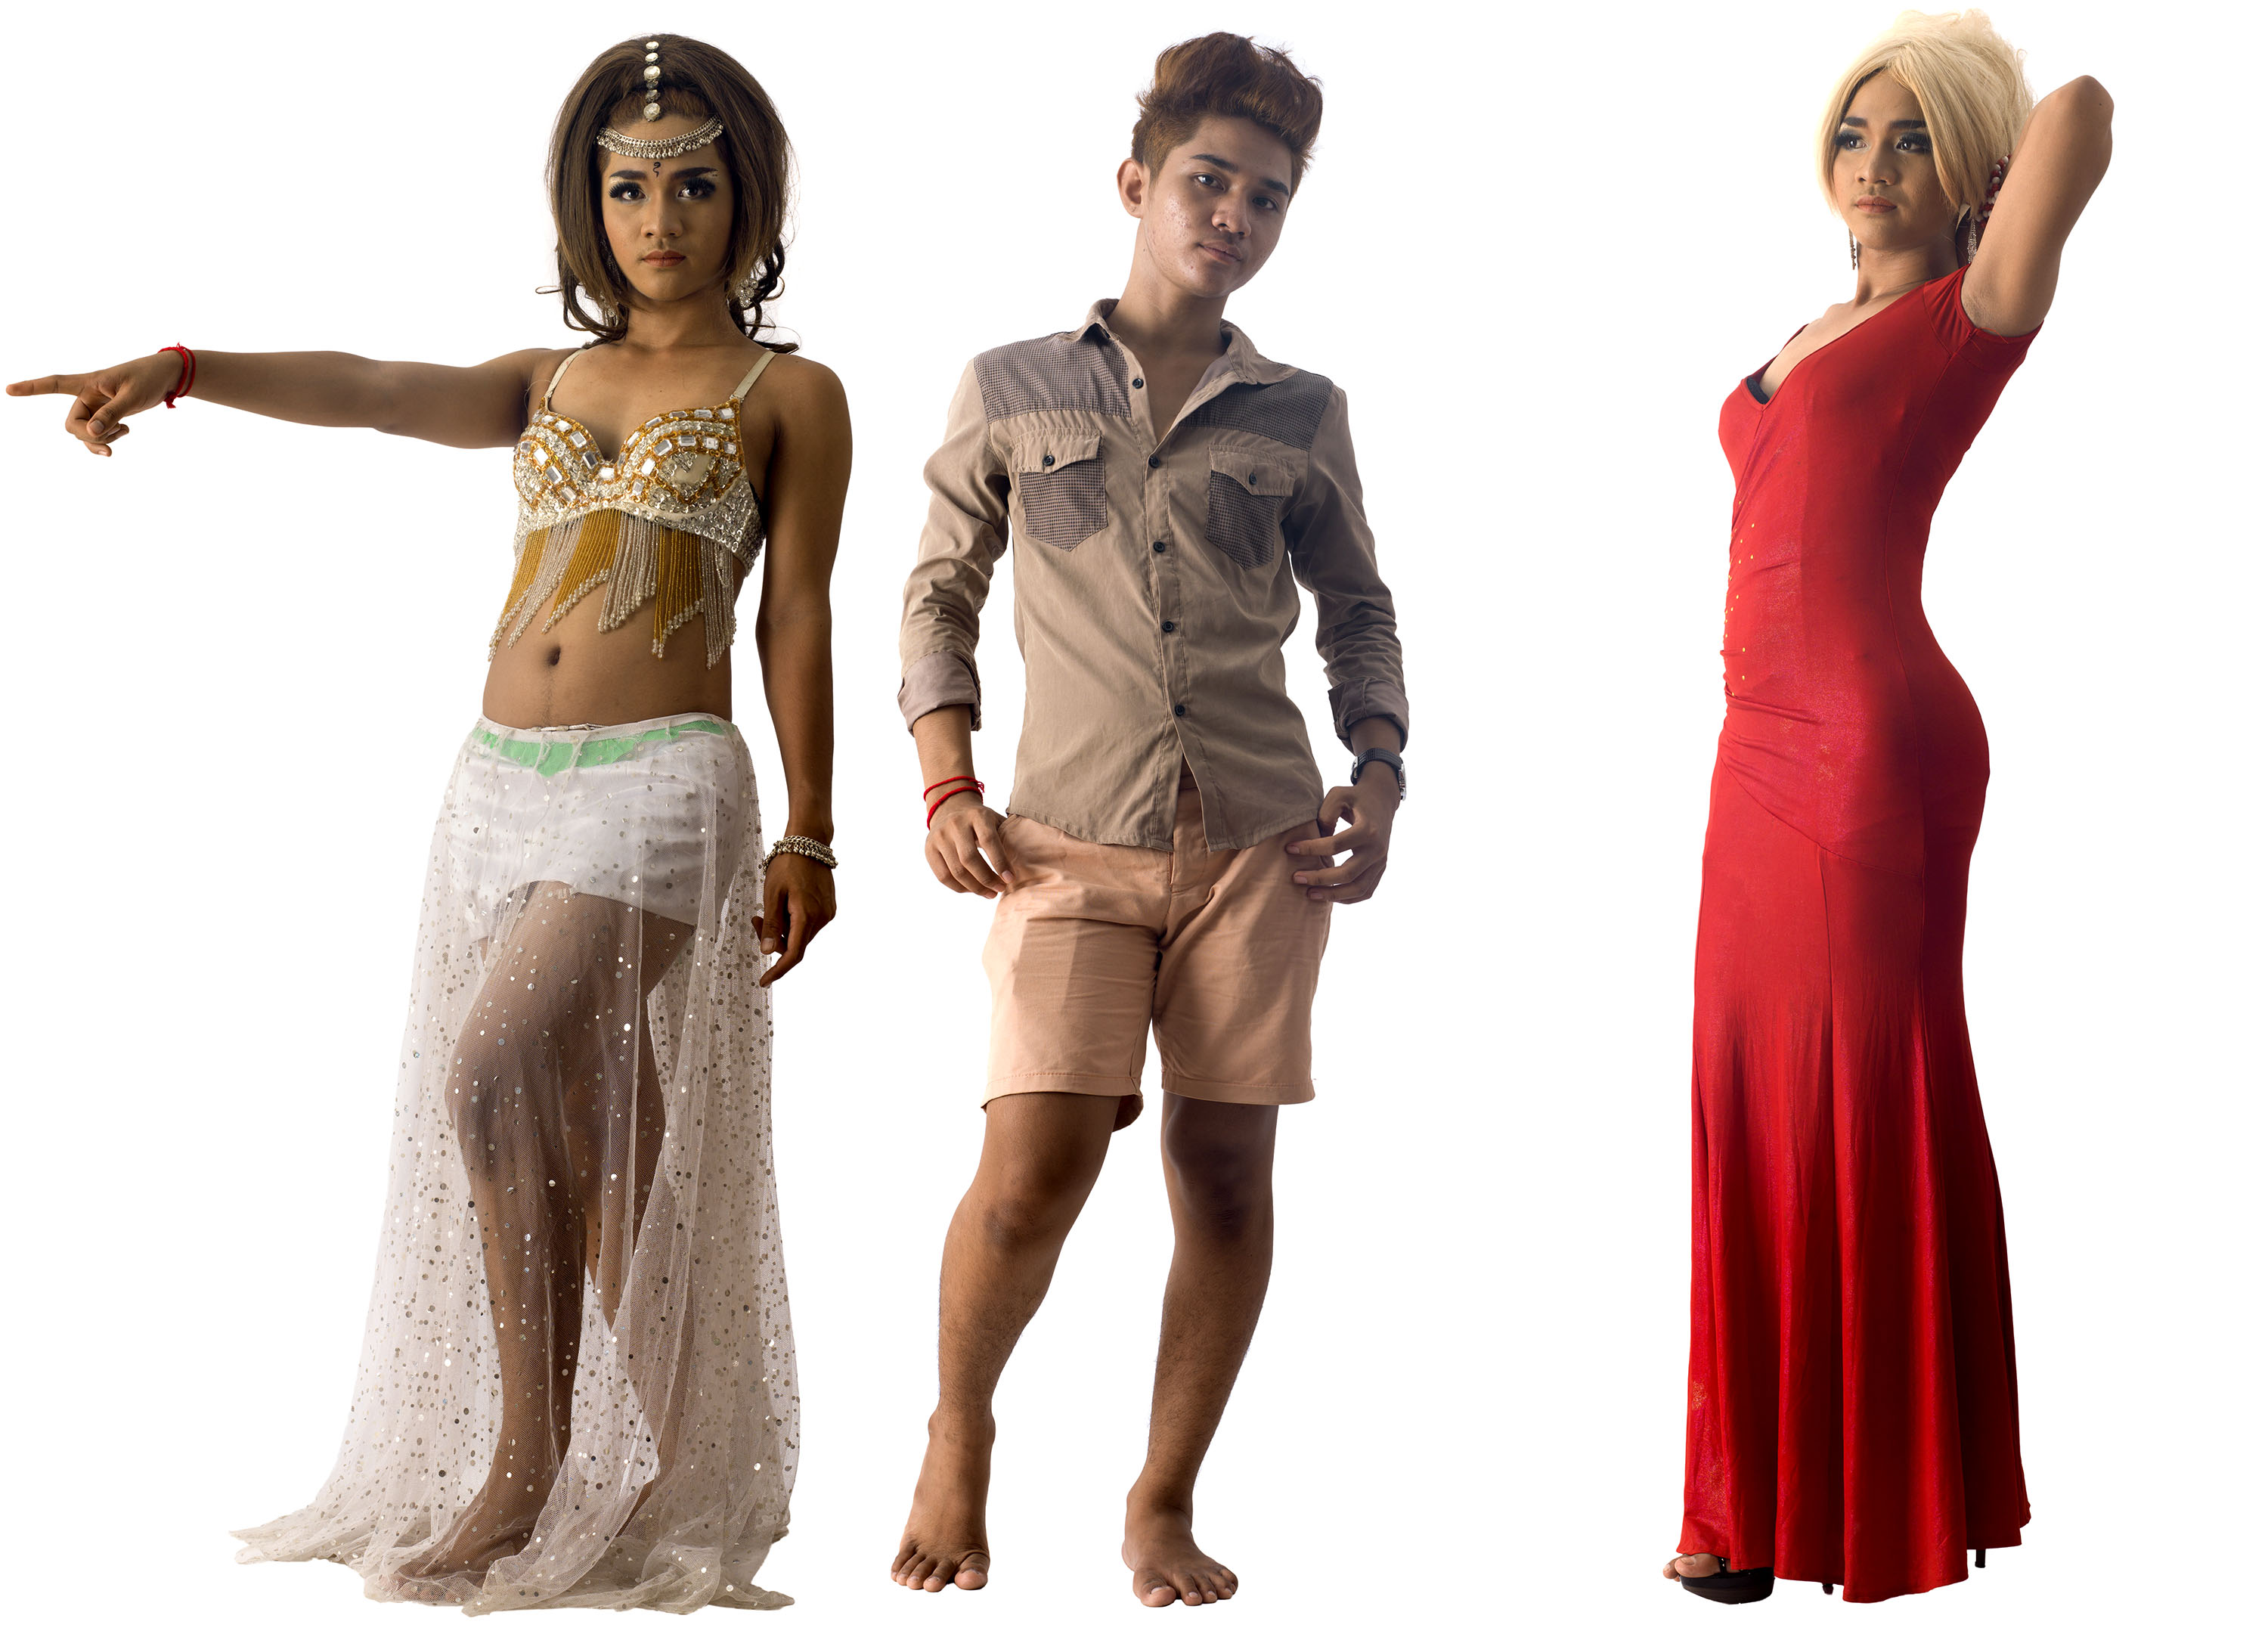 Drag in Cambodia: Chaii / Lucky by Martijn Crowe